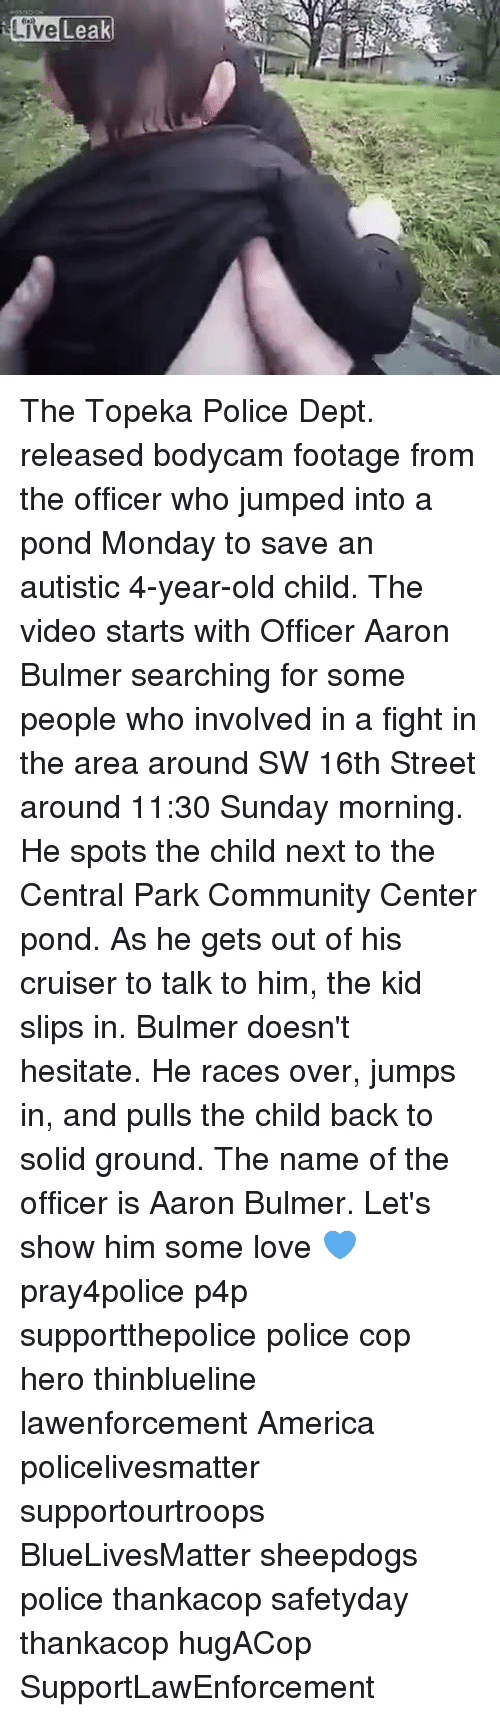 America, Community, and Love: Live Leak The Topeka Police Dept. released bodycam footage from the officer who jumped into a pond Monday to save an autistic 4-year-old child. The video starts with Officer Aaron Bulmer searching for some people who involved in a fight in the area around SW 16th Street around 11:30 Sunday morning. He spots the child next to the Central Park Community Center pond. As he gets out of his cruiser to talk to him, the kid slips in. Bulmer doesn't hesitate. He races over, jumps in, and pulls the child back to solid ground. The name of the officer is Aaron Bulmer. Let's show him some love 💙 pray4police p4p supportthepolice police cop hero thinblueline lawenforcement America policelivesmatter supportourtroops BlueLivesMatter sheepdogs police thankacop safetyday thankacop hugACop SupportLawEnforcement